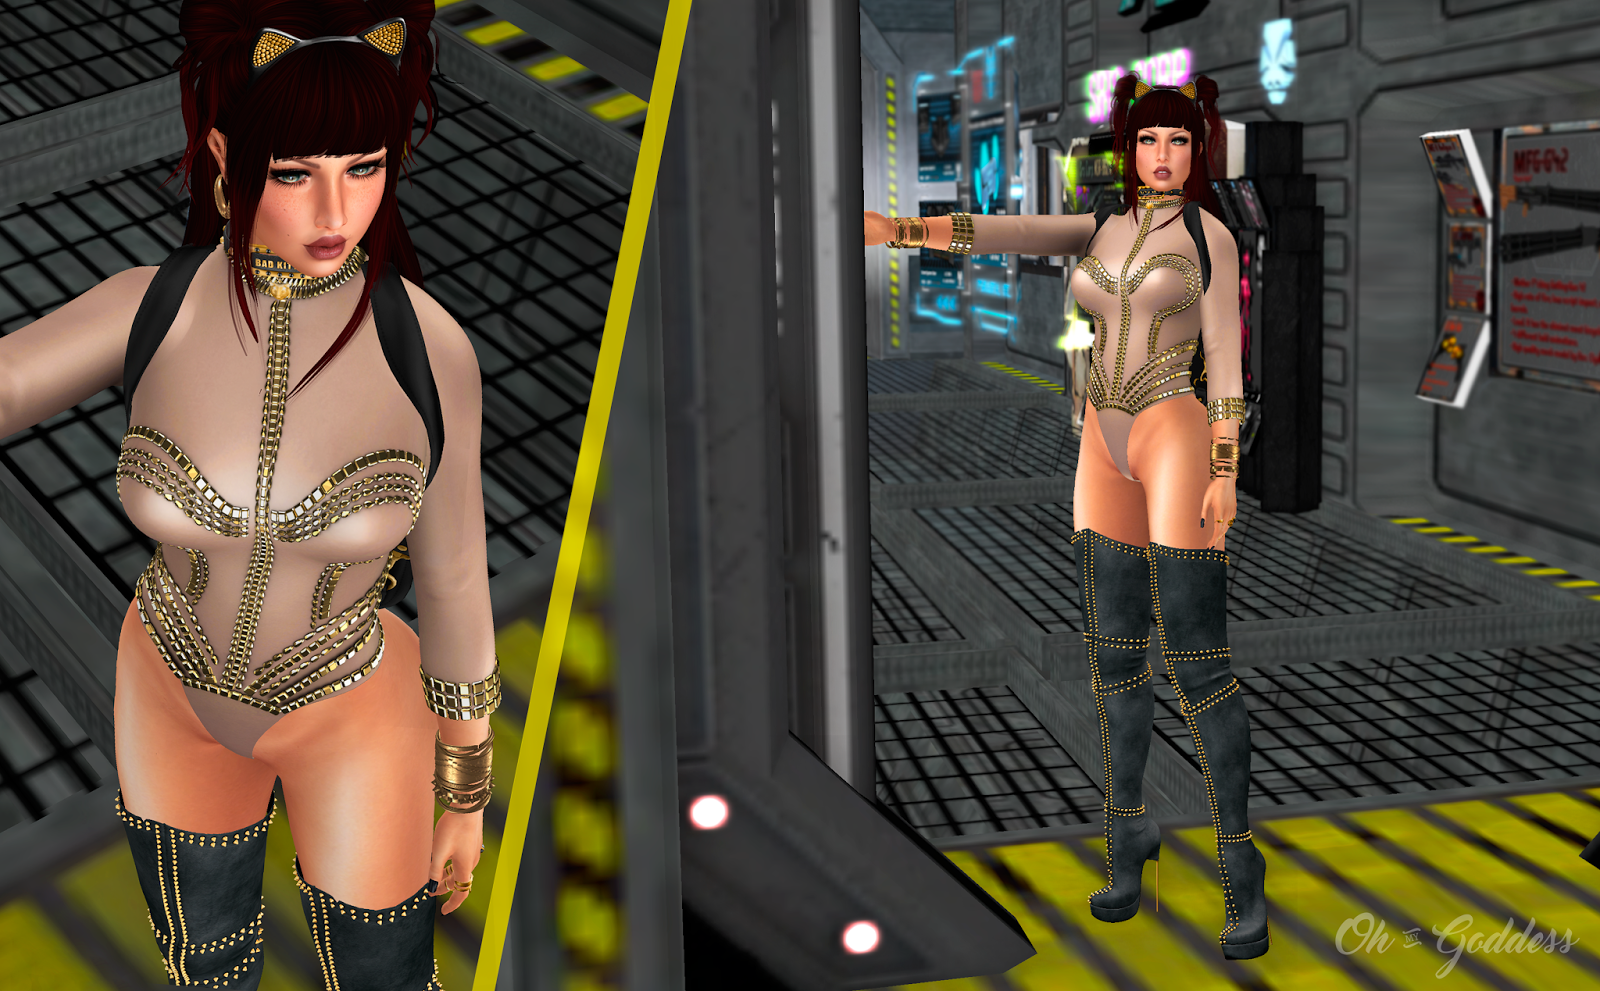 OhMyGoddess Second Life Fashion Blog: Bad, Bad Kitty outfit